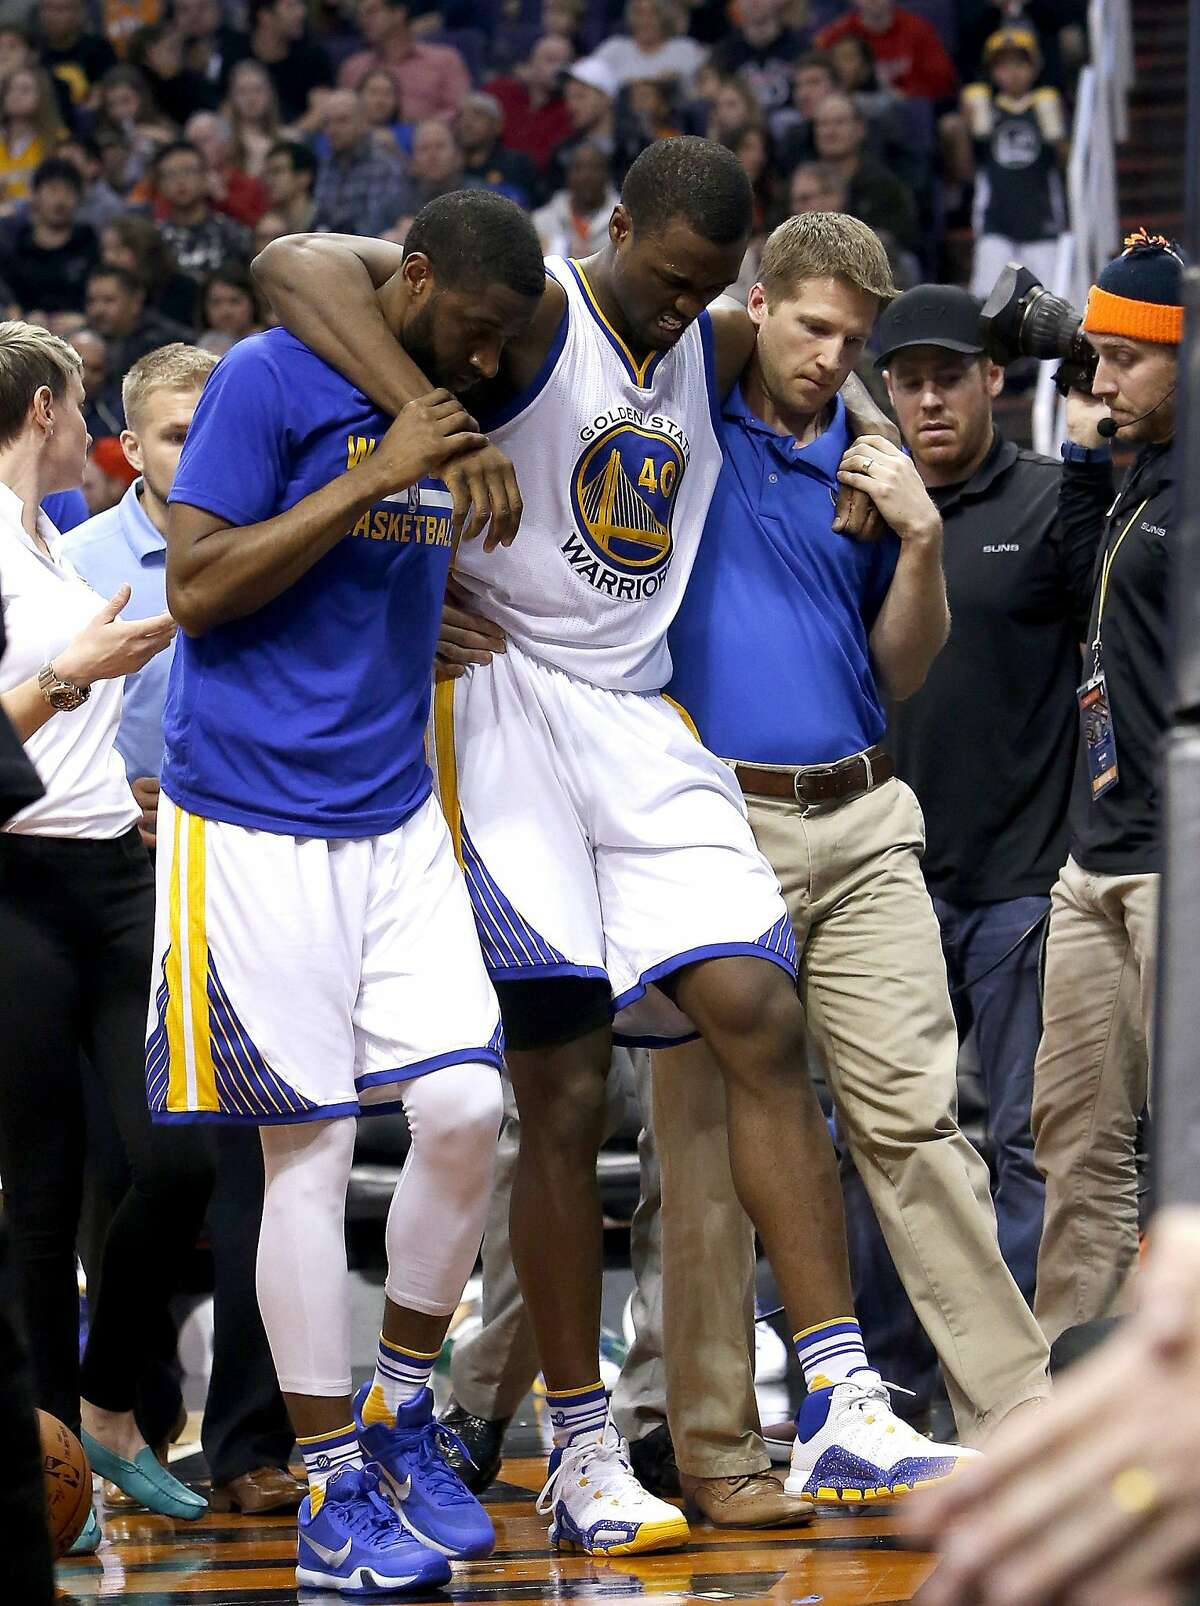 Golden State Warriors forward Harrison Barnes is helped off the court during the third quarter of an NBA basketball game against the Phoenix Suns, Friday, Nov. 27, 2015, in Phoenix.